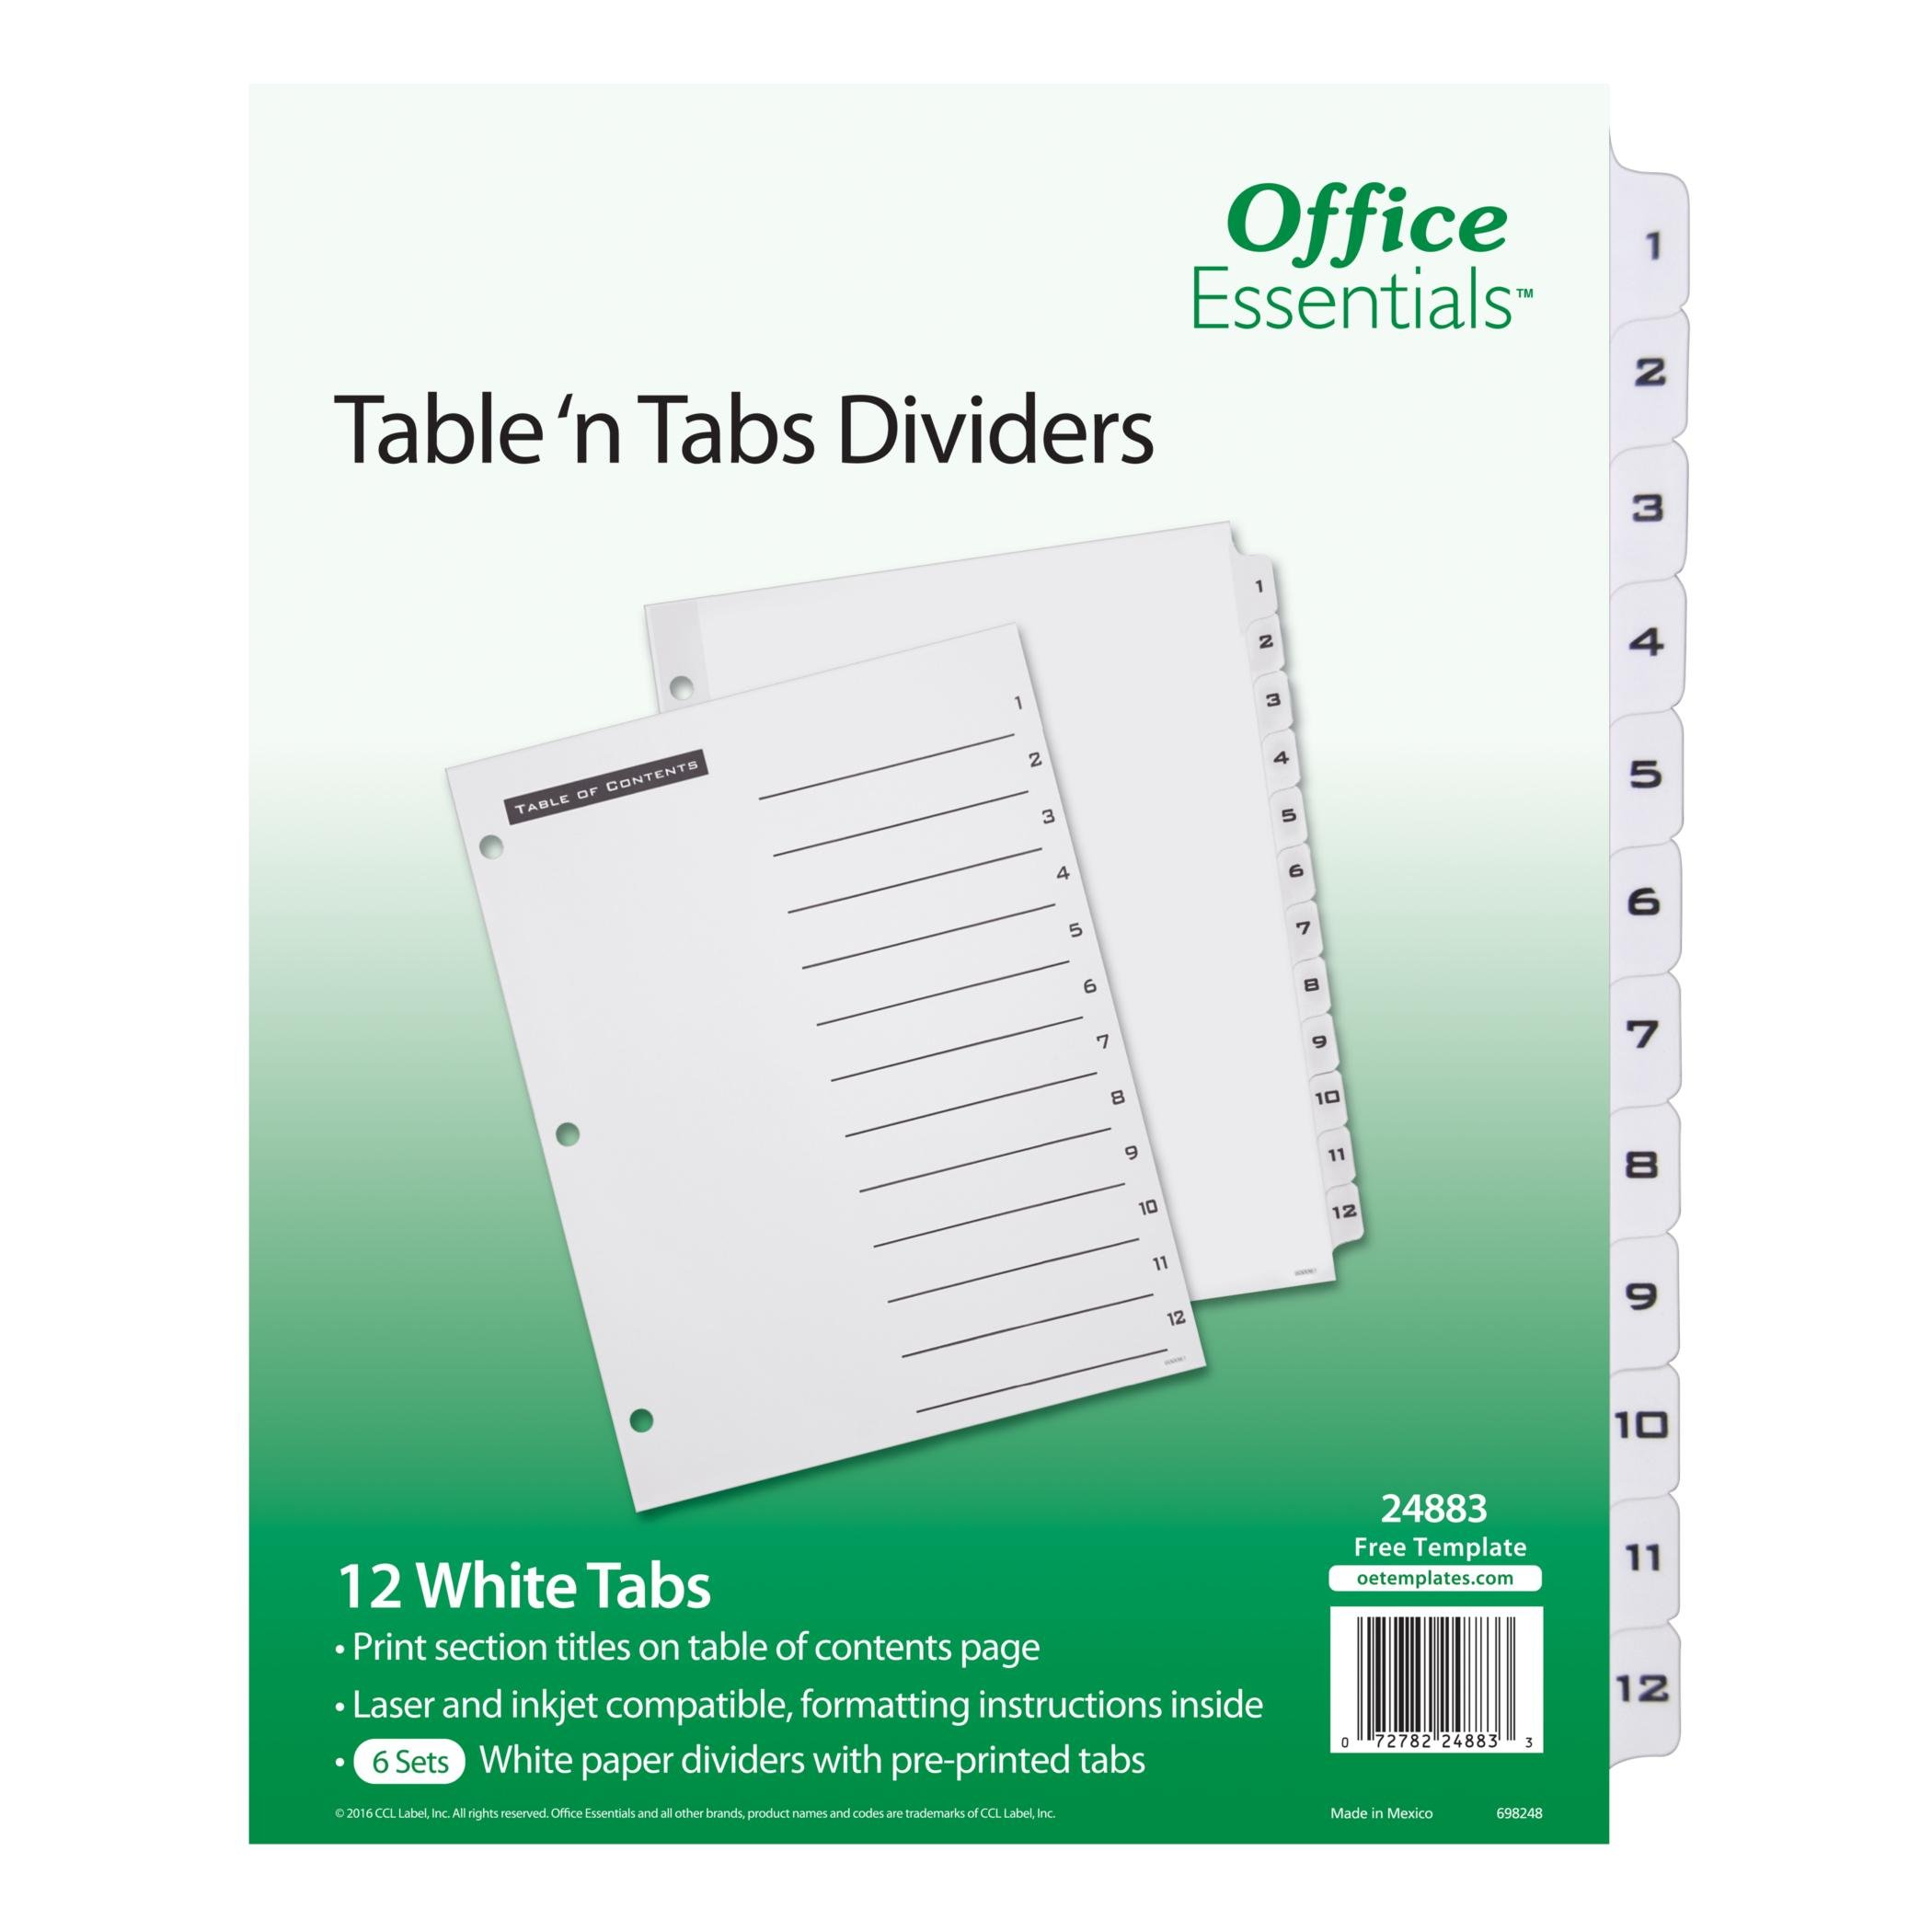 Office Essentials Table 'n Tabs Dividers, 8-1/2'' x 11'', 1-12 Tab, Black/White Tab, Laser/Inkjet, Pack of 6 (24883)